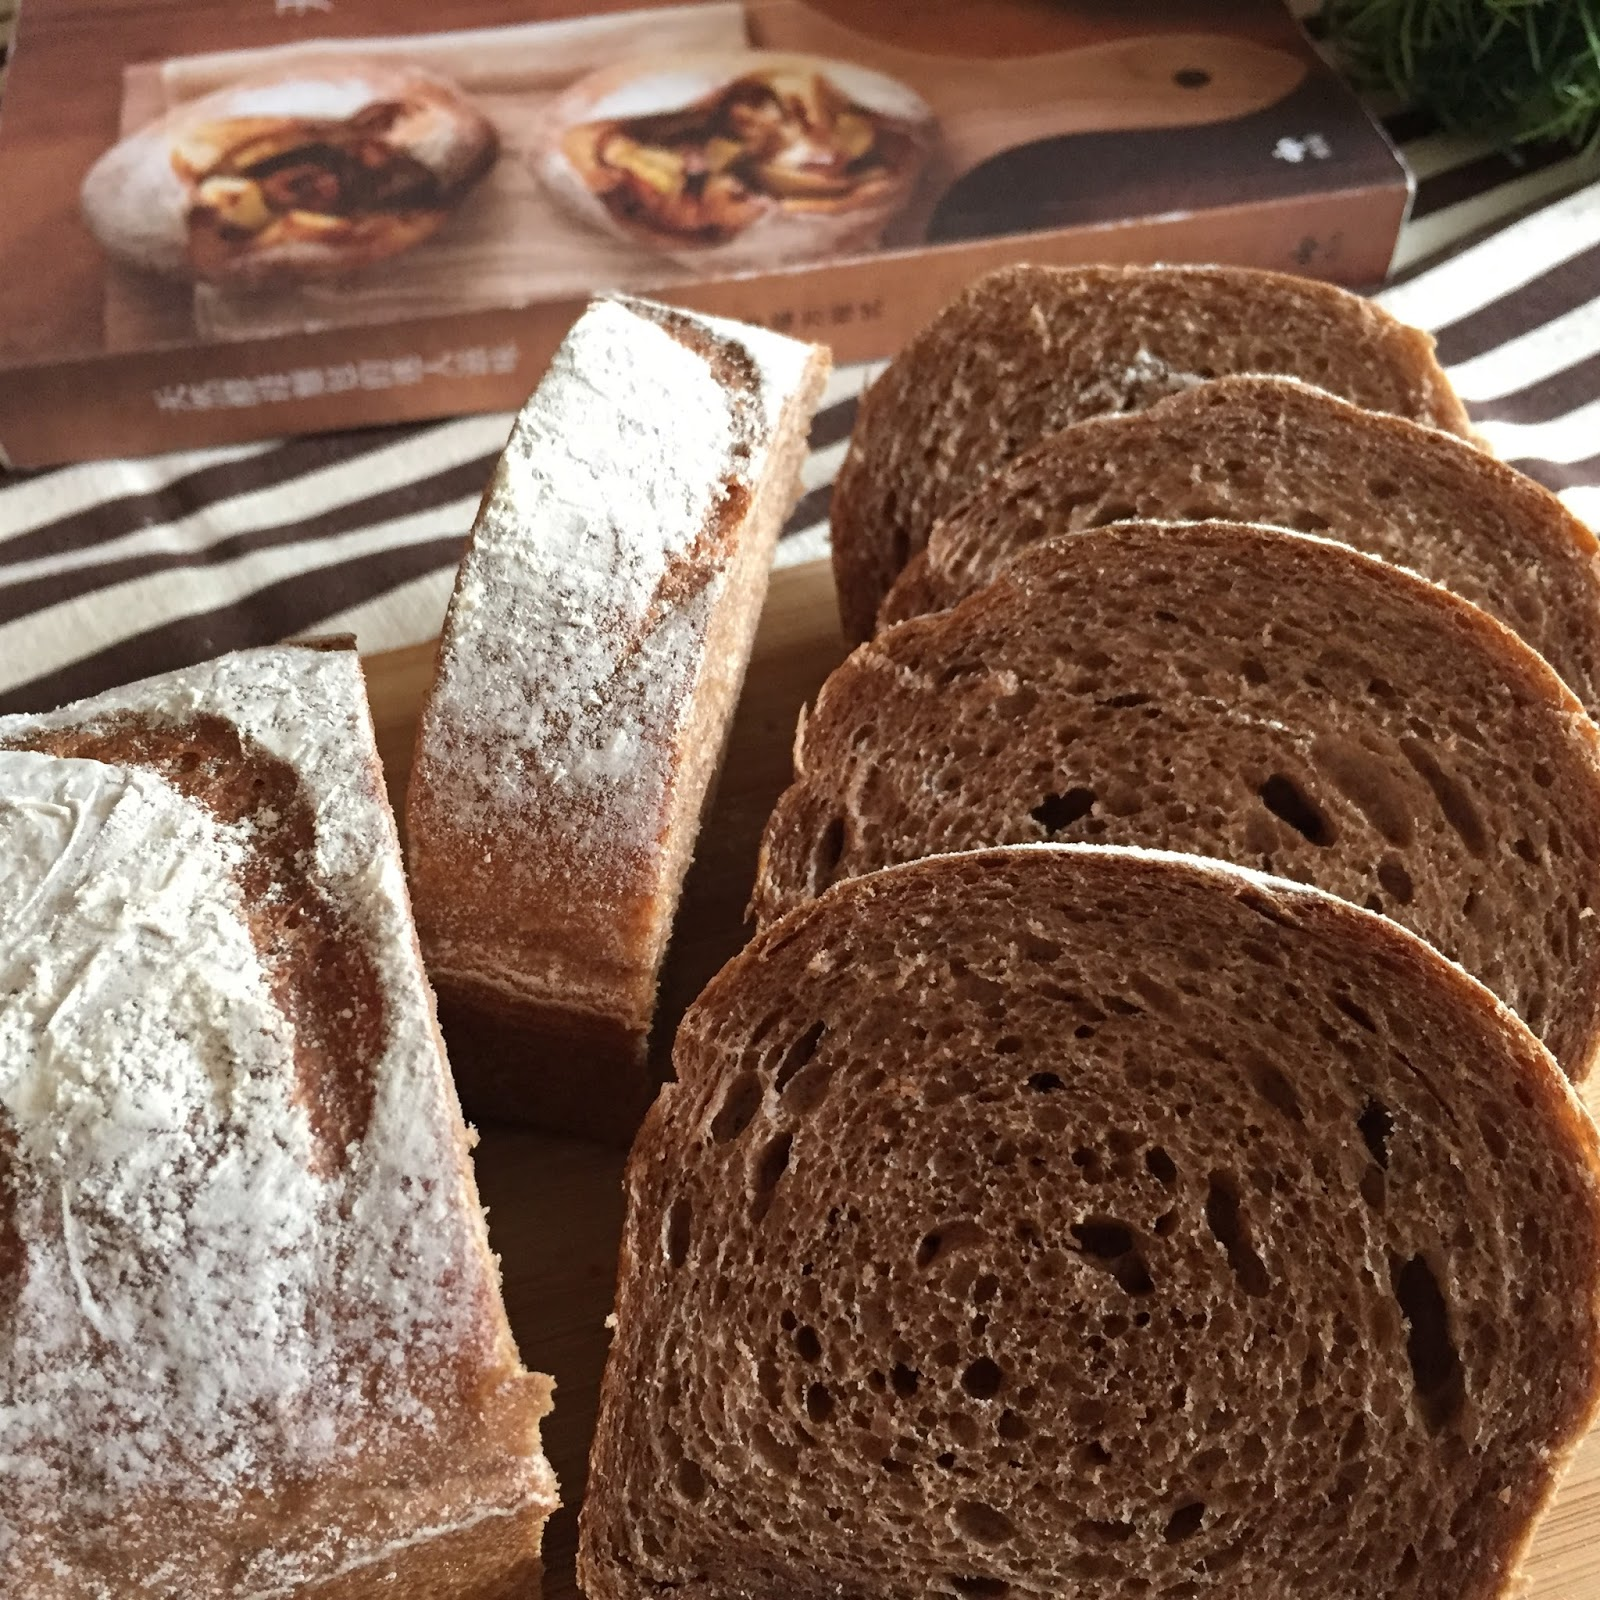 My Mind Patch: Light Cocoa Rye Bread 黑麦面包